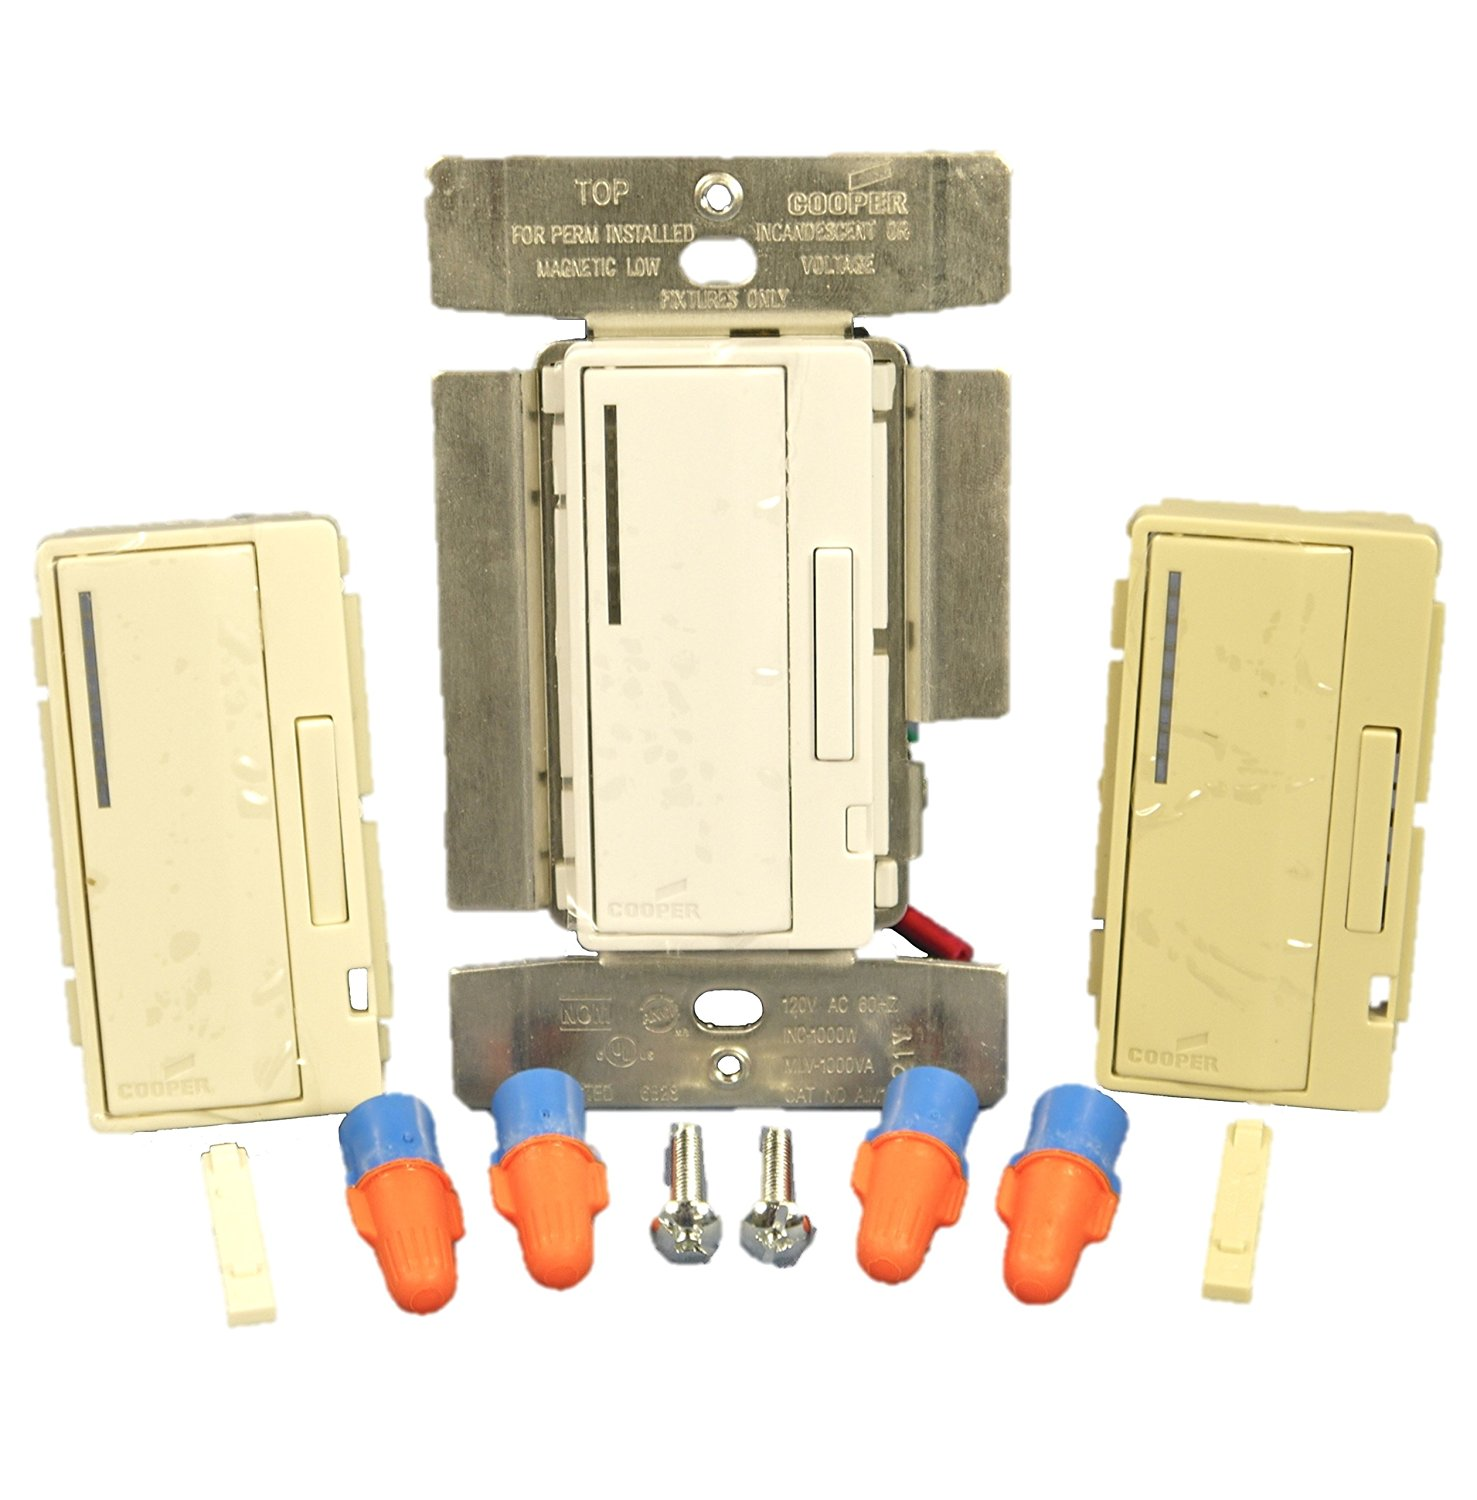 Cheap 0 10v Dimmer Find Deals On Line At Alibabacom Cooper Wiring Devices Inc Get Quotations Aim10 C1 Smart Mlv 1000w 120v